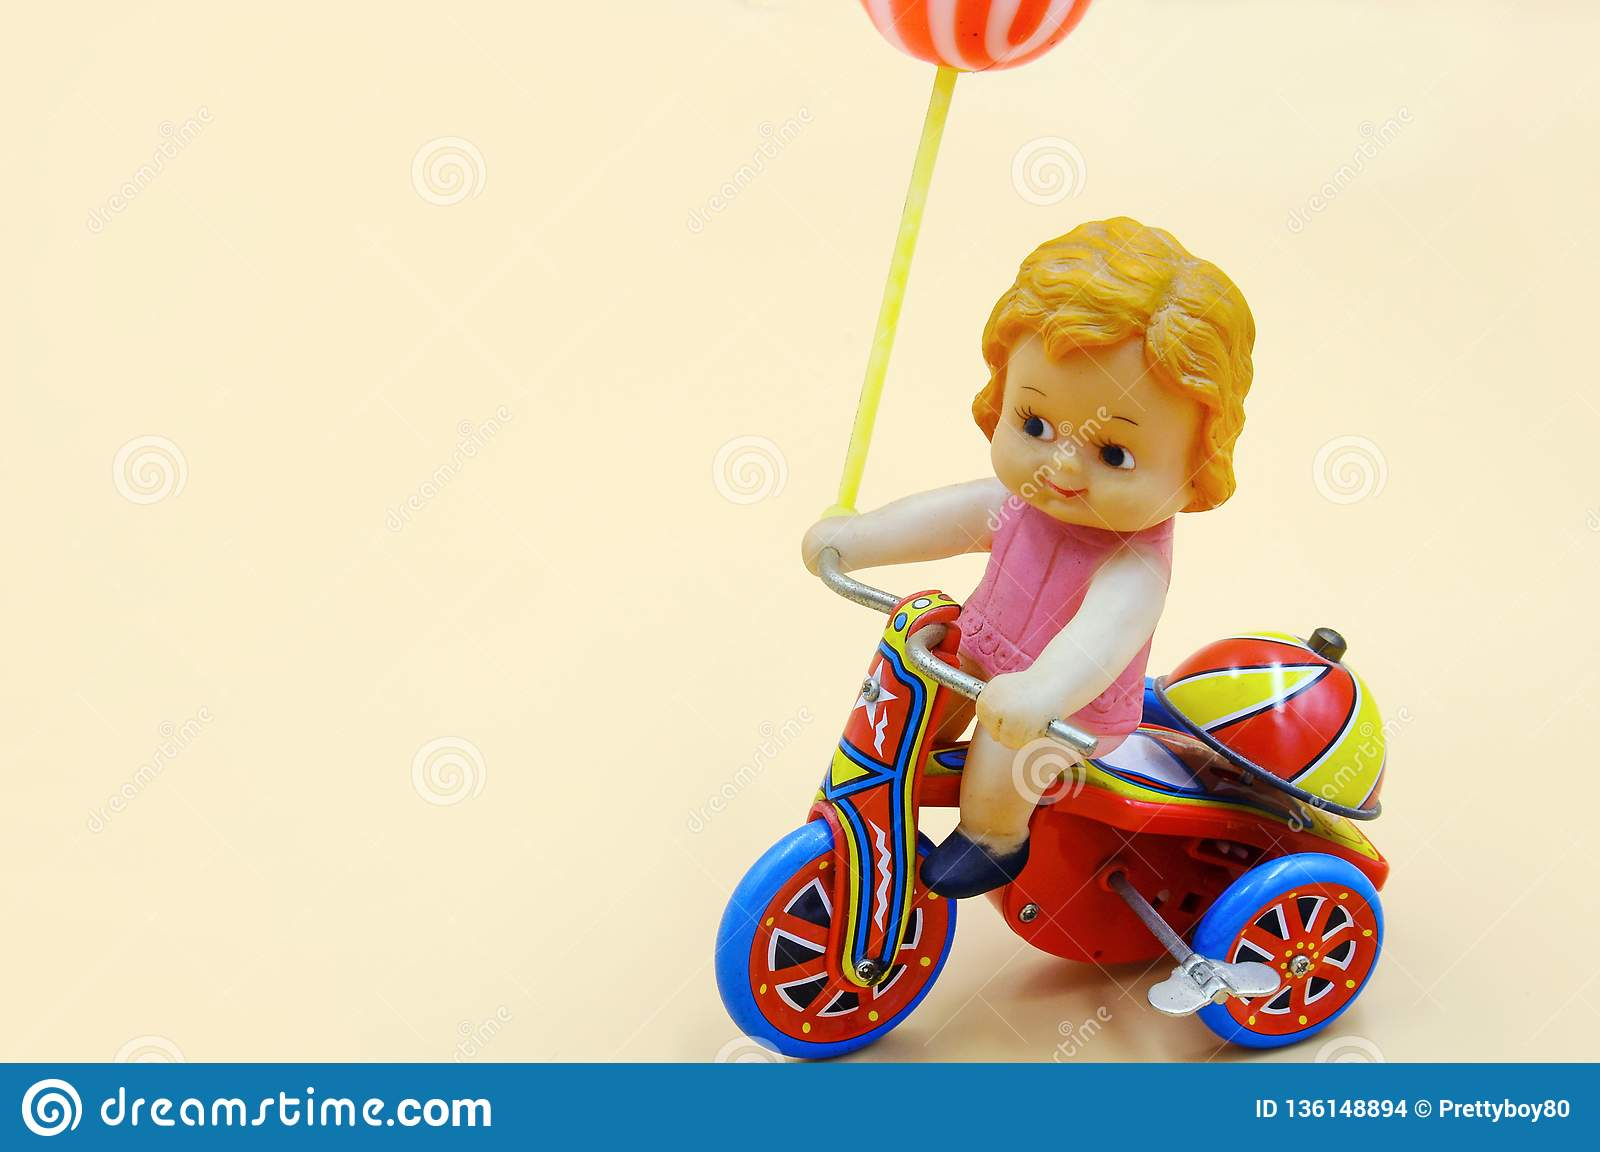 Vintage Kids Tricycle Photos Free Royalty Free Stock Photos From Dreamstime